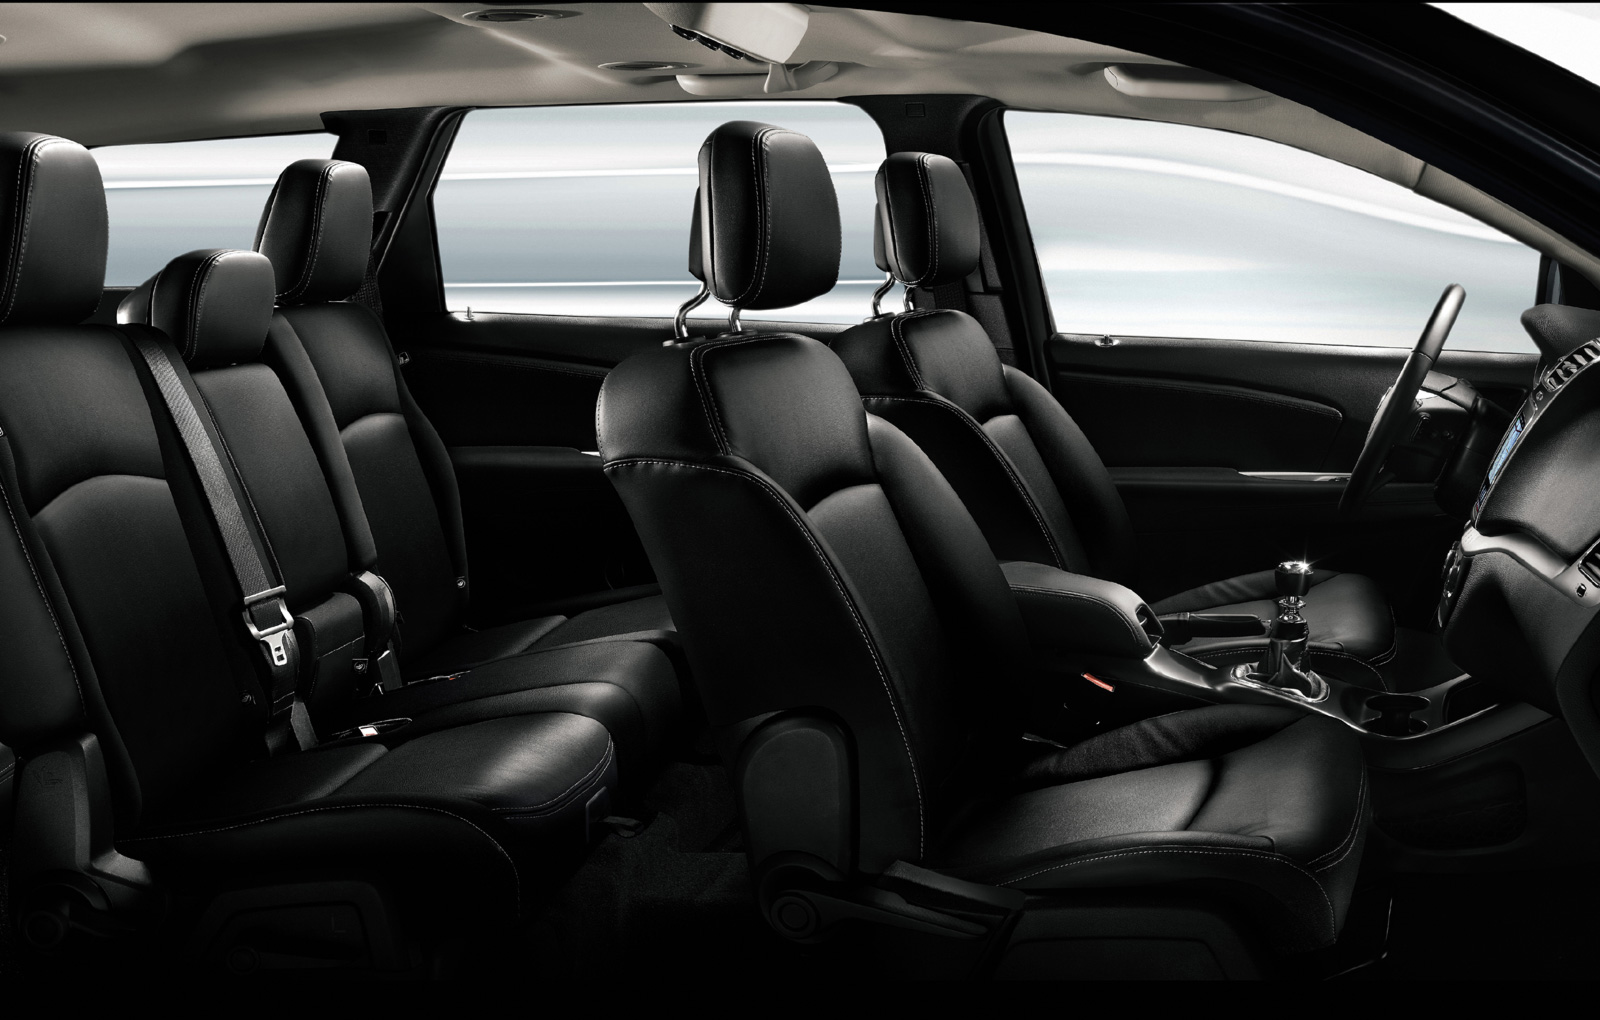 Click image for larger version  Name:b4426_2011-Fiat-Freemont-interior-1.jpg Views:306 Size:318.9 KB ID:54012